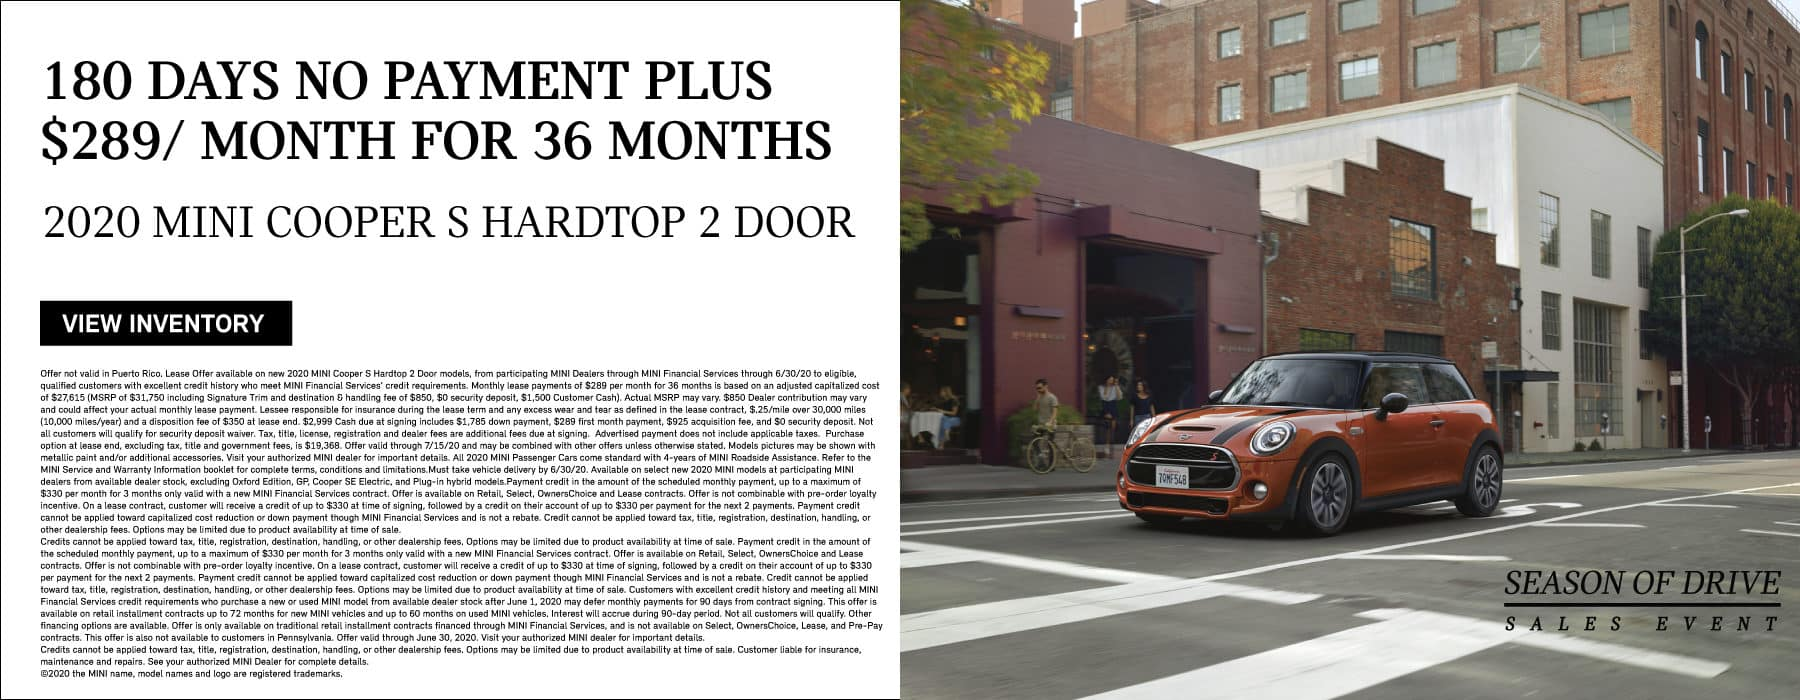 HT- Season of drive sales event. 180 days no payment plus $289/month for 36 months on a 2020 mini cooper s hardtop 2door